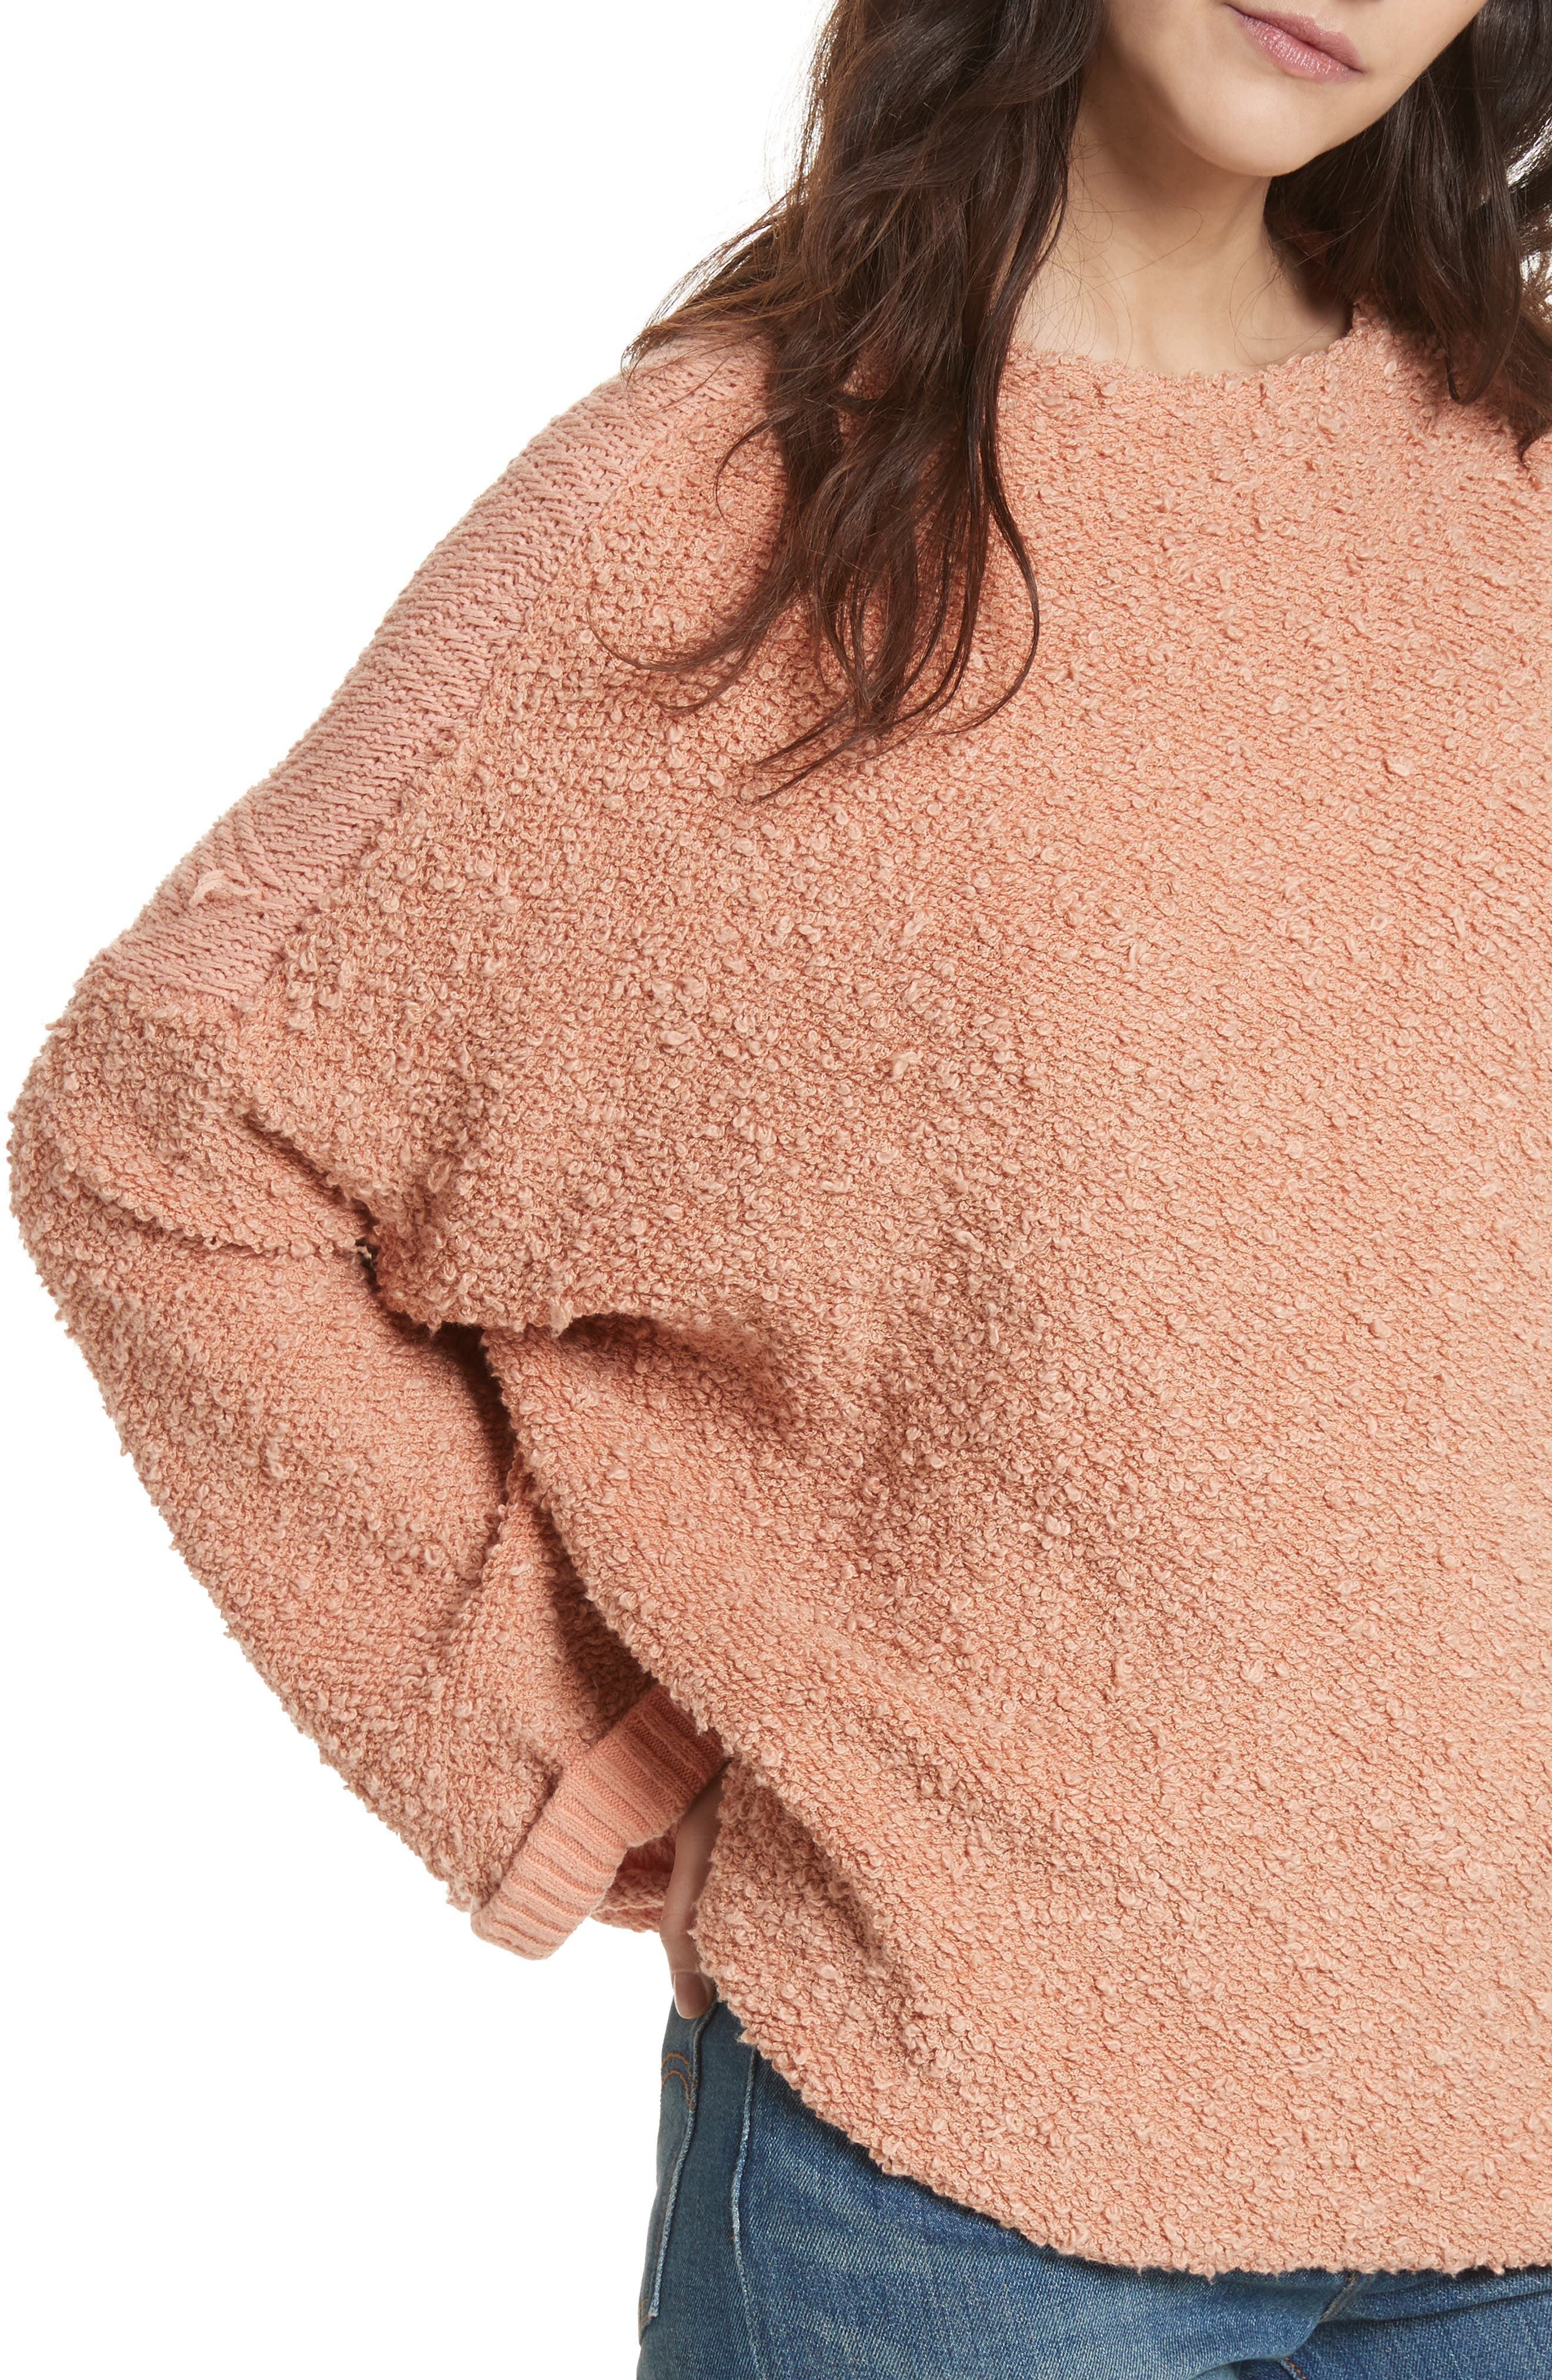 Cuddle Up Pullover,                             Alternate thumbnail 19, color,